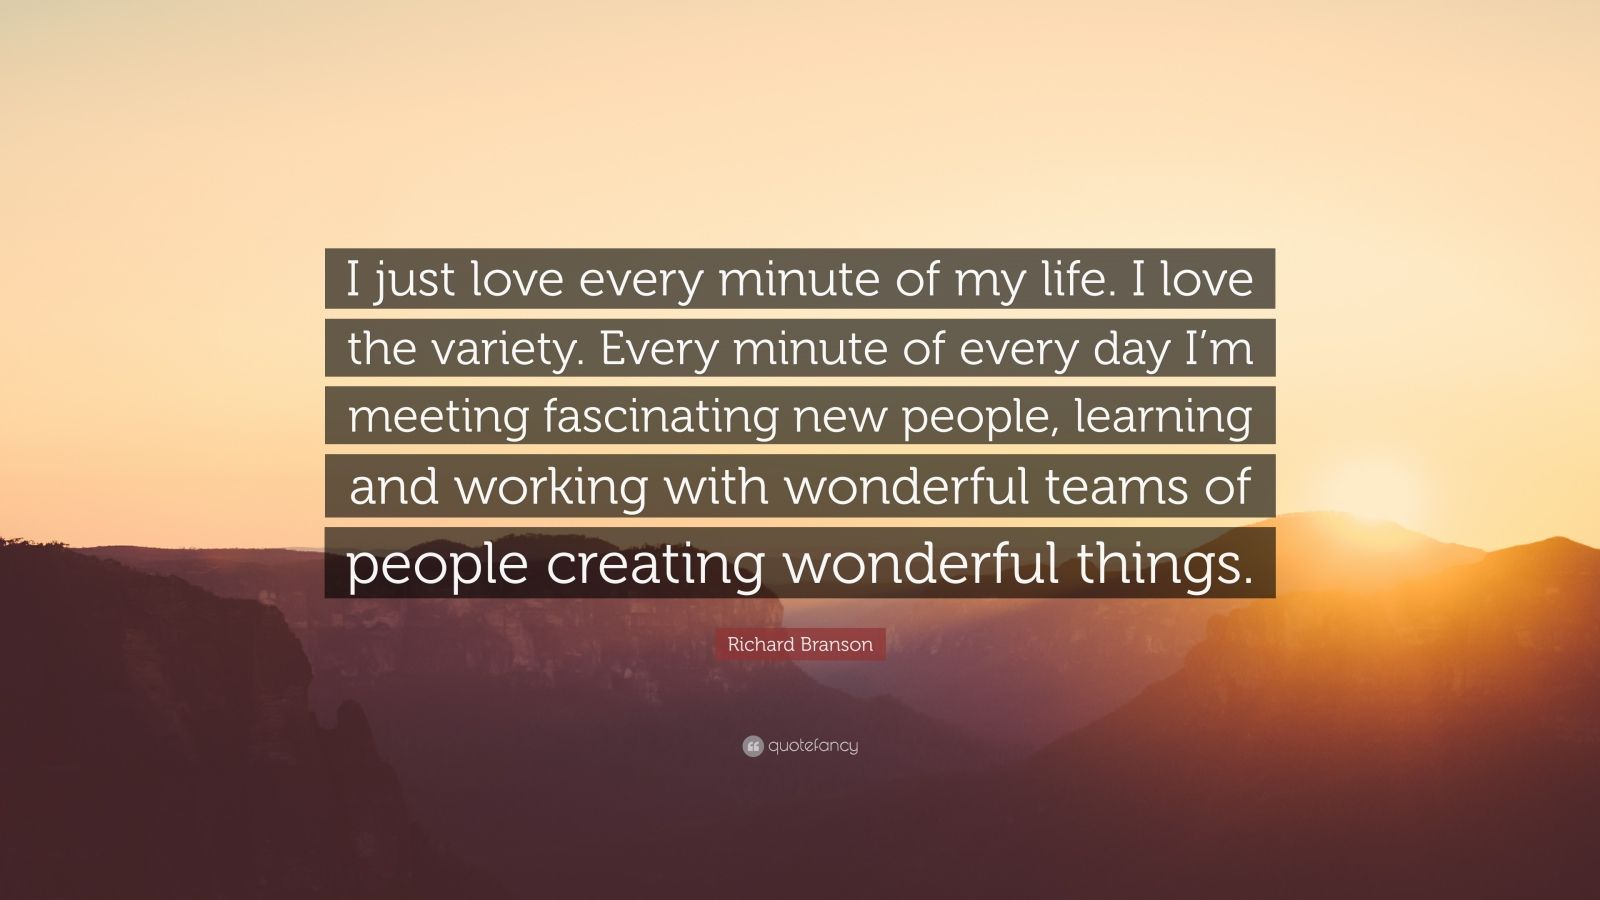 """Richard Branson Quote: """"I just love every minute of my life. I love the variety. Every minute of every day I'm meeting fascinating new people, learning and working with wonderful teams of people creating wonderful things."""""""